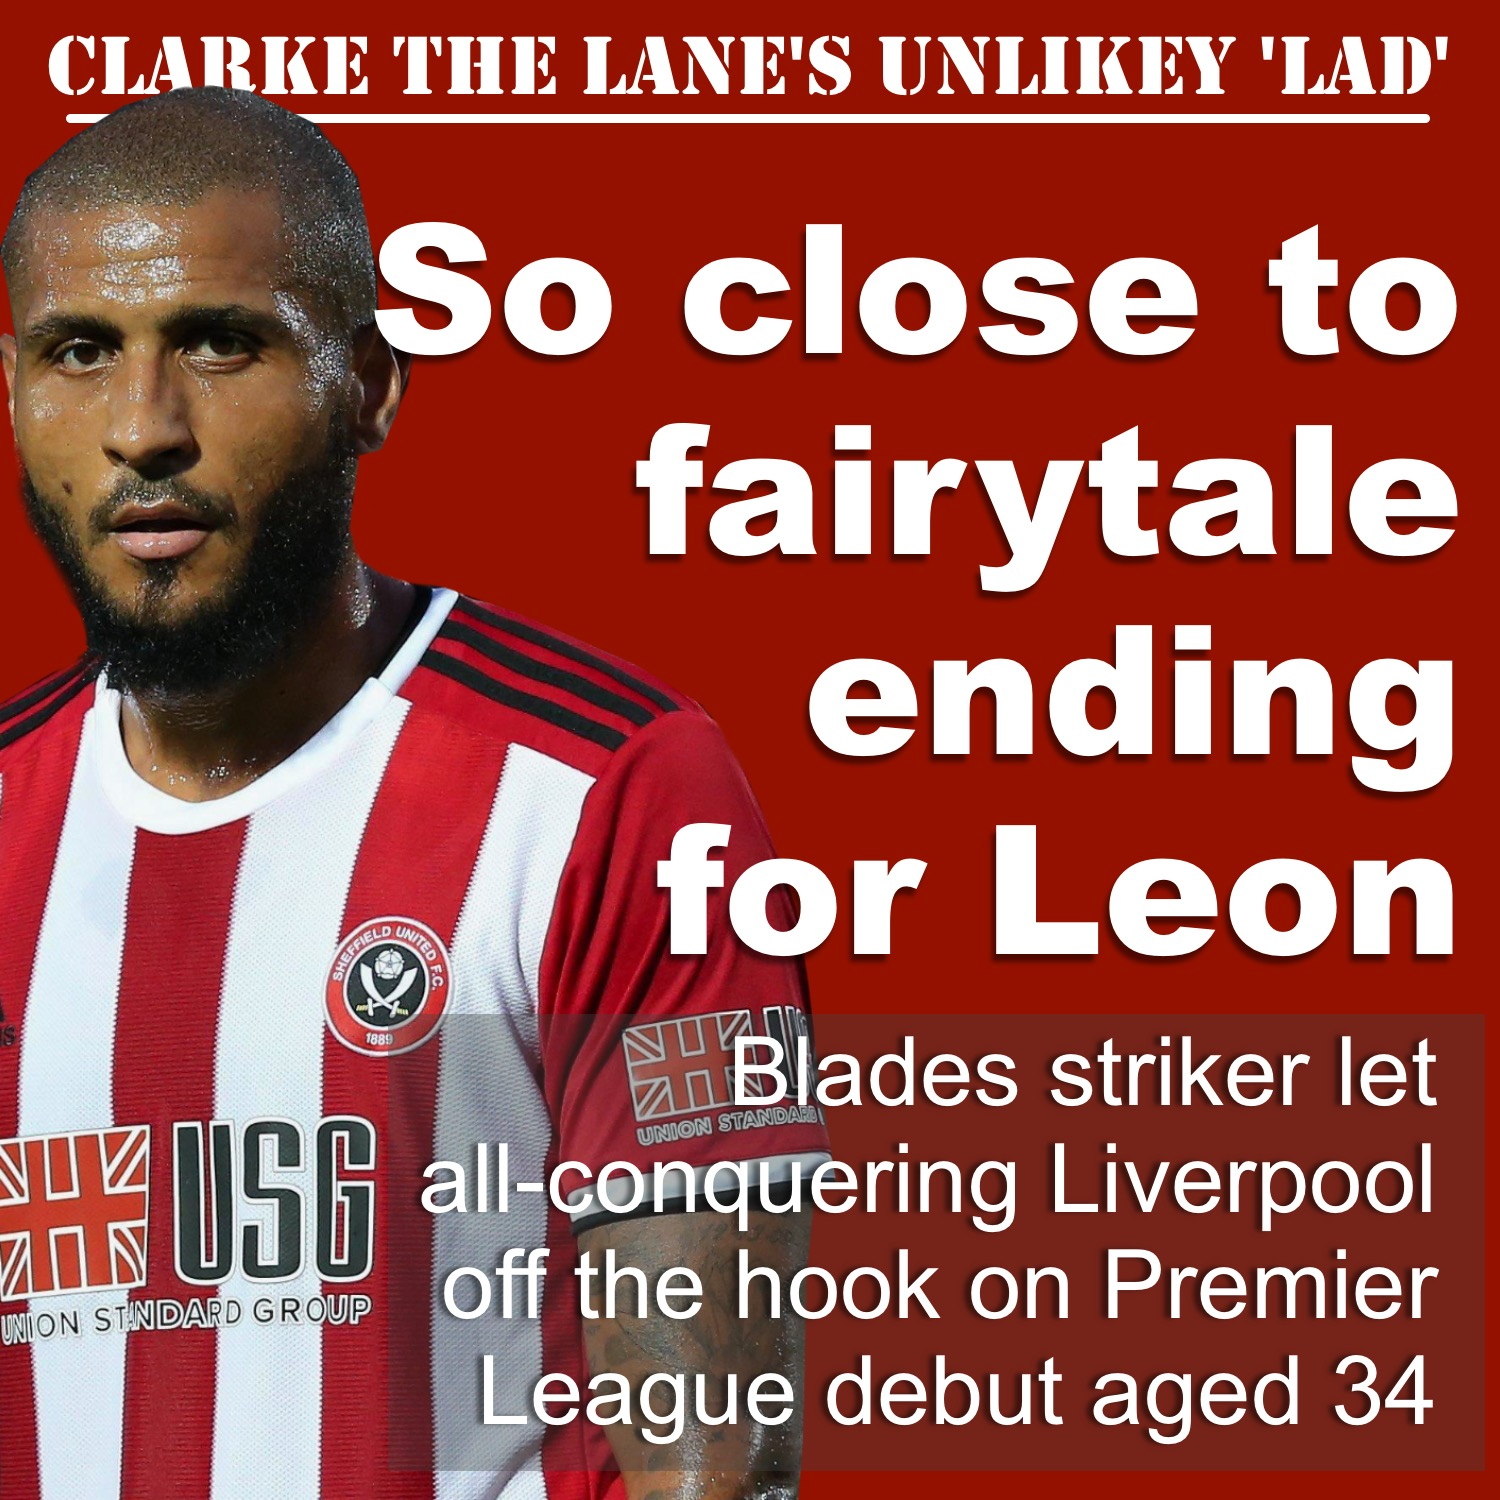 Sheffield United's Leon Clarke so close to fairytale against Liverpool on Premier League debut aged 34